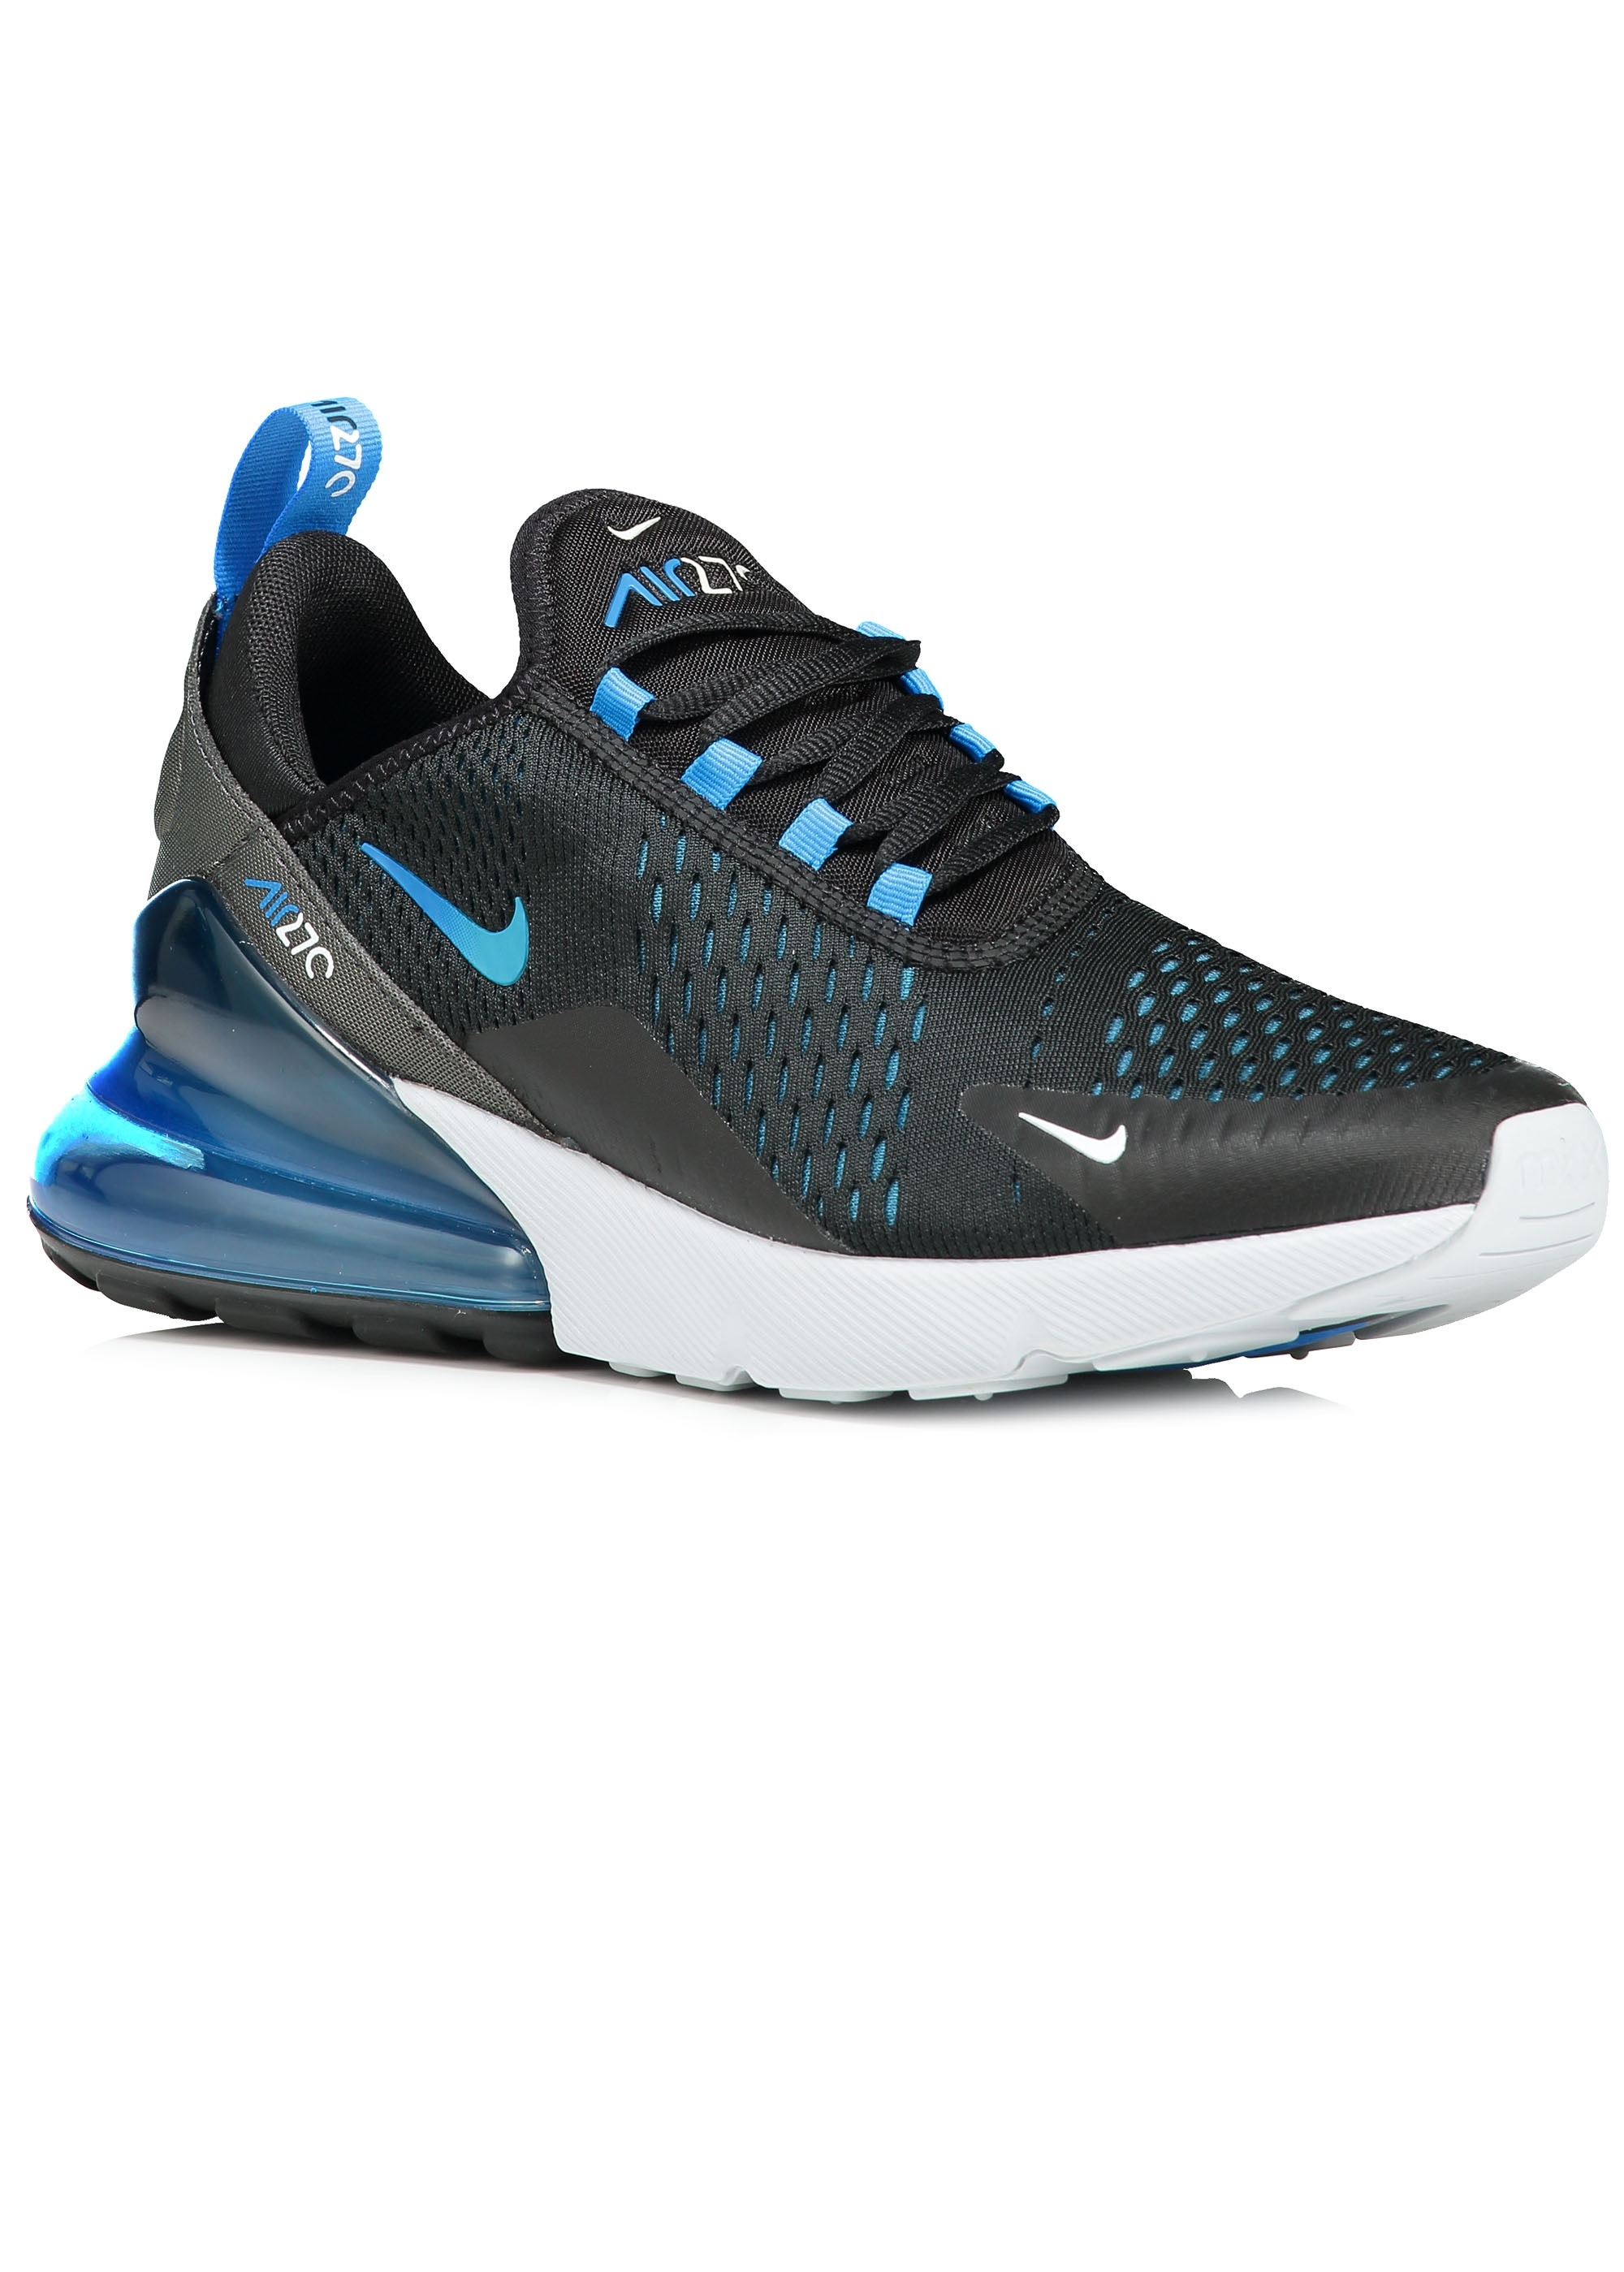 new arrival 1850a cec31 Nike Footwear Air Max 270 - Black / Blue